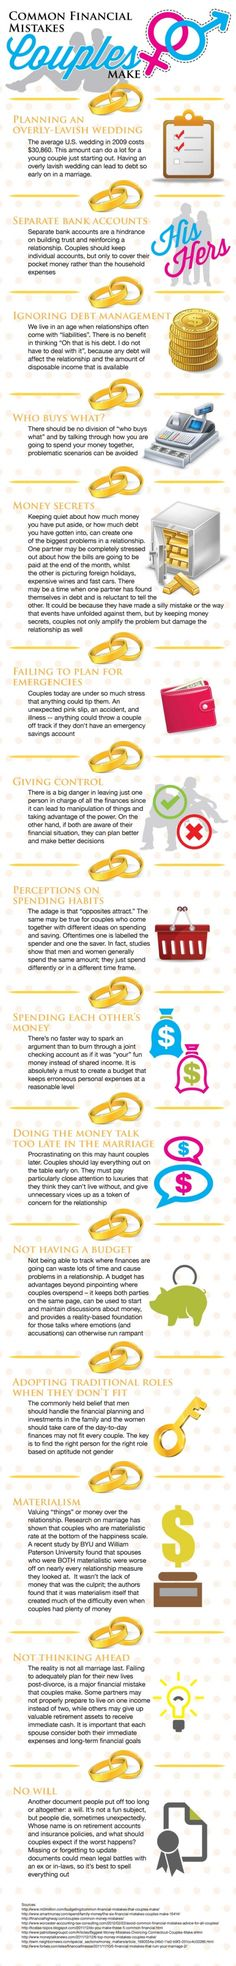 Common Financial Mistakes Couples Make! Reminds me of Dave Ramsey.